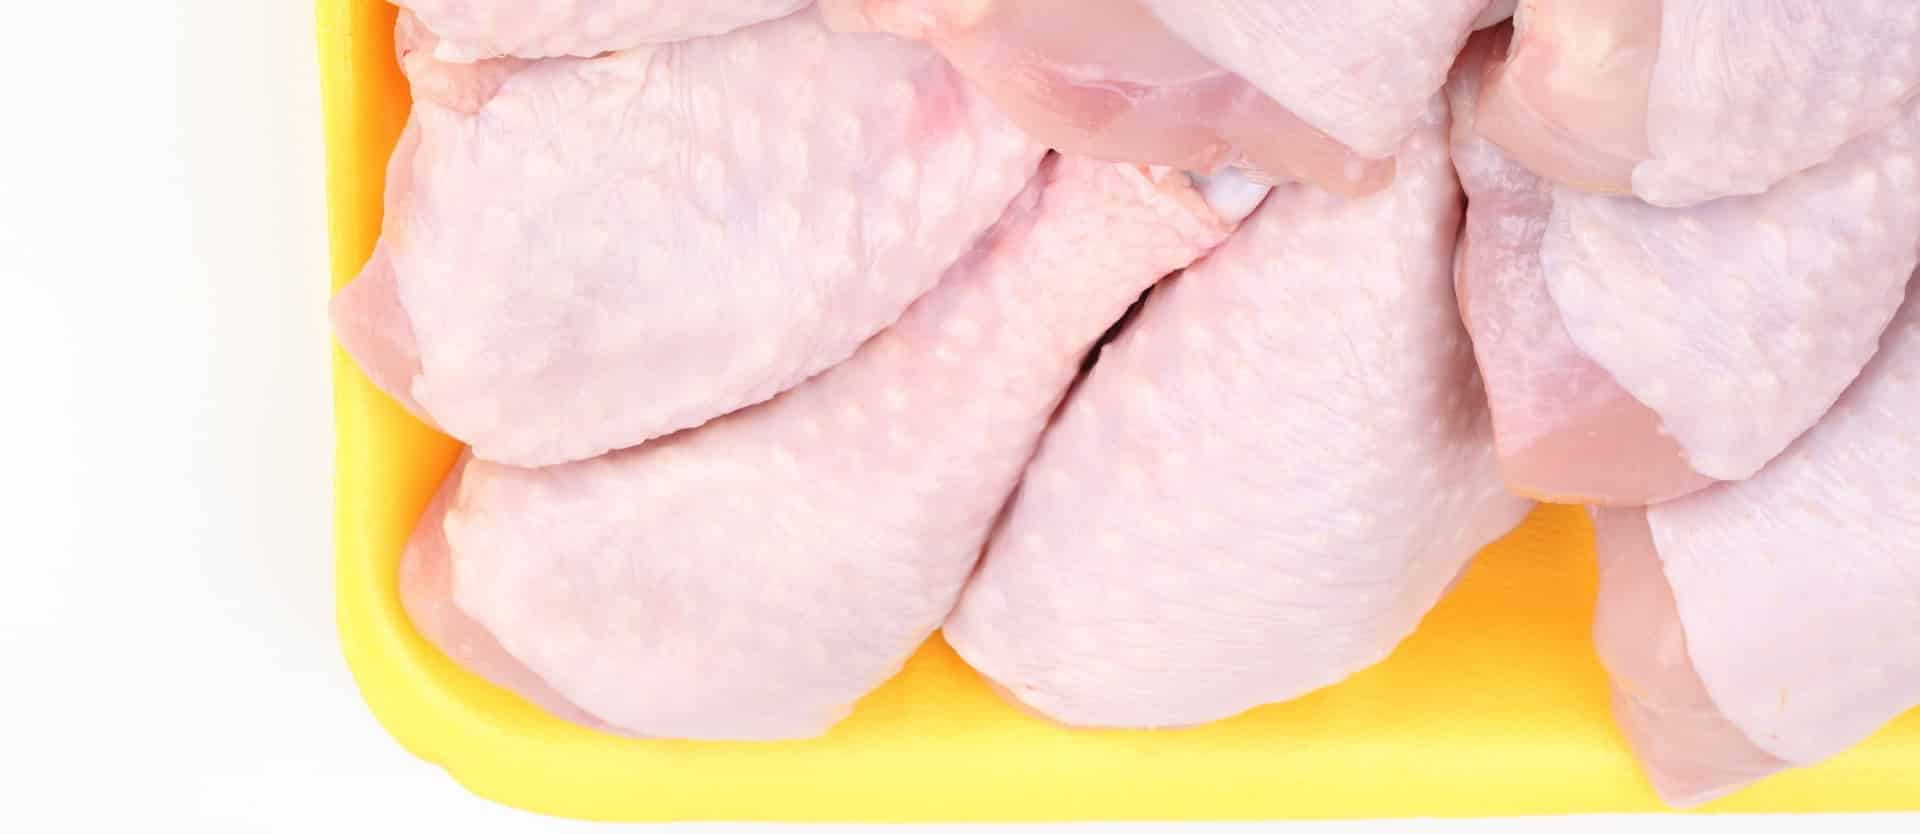 Chicken Salmonella Thanks to Meat Industry Lawsuit